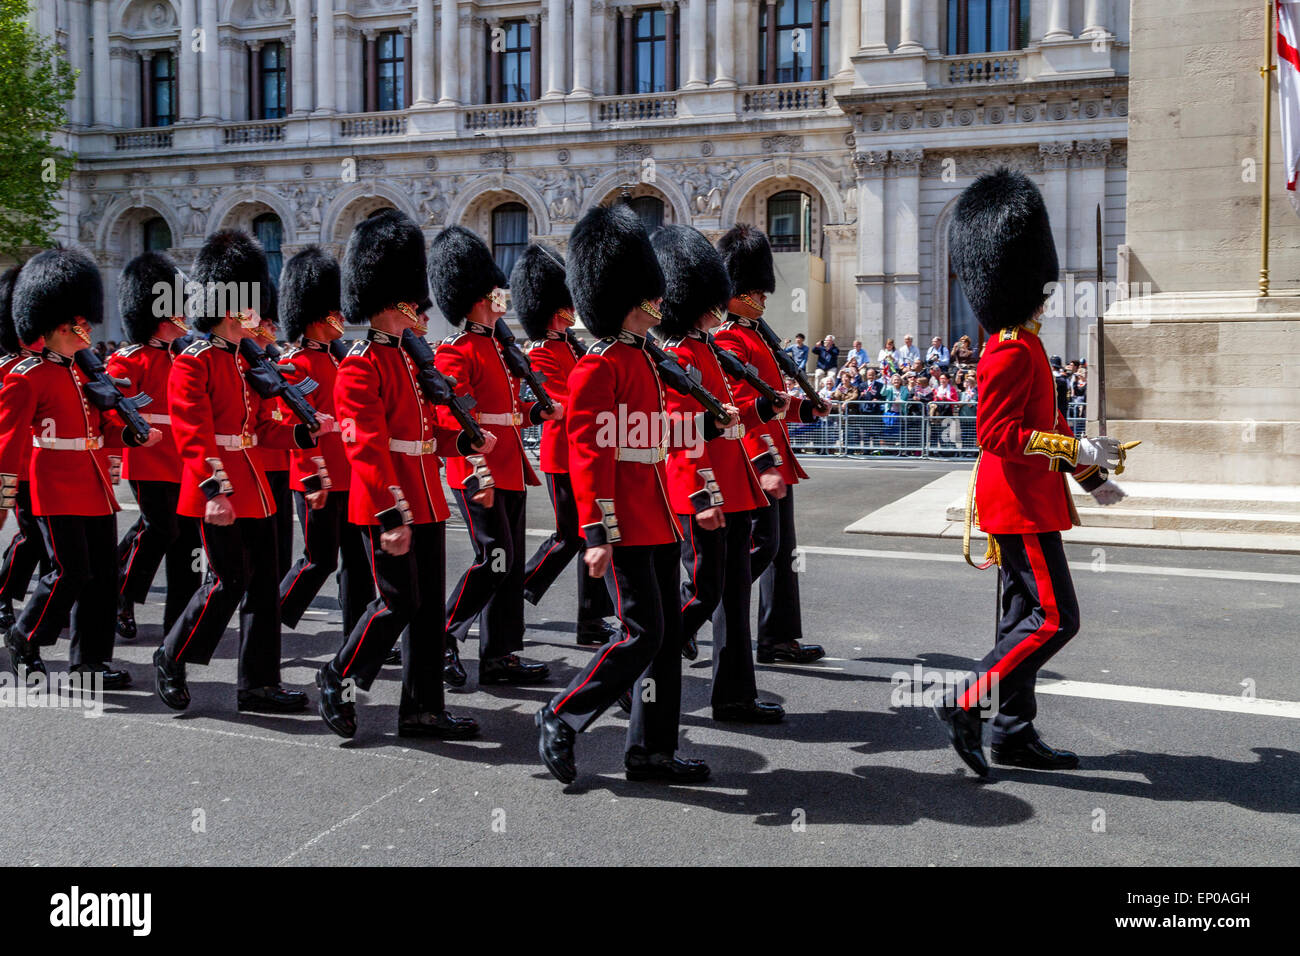 The Scots Guards March Past The Cenotaph In Whitehall As Part Of The 70th Anniversary Celebrations of VE Day, London, - Stock Image